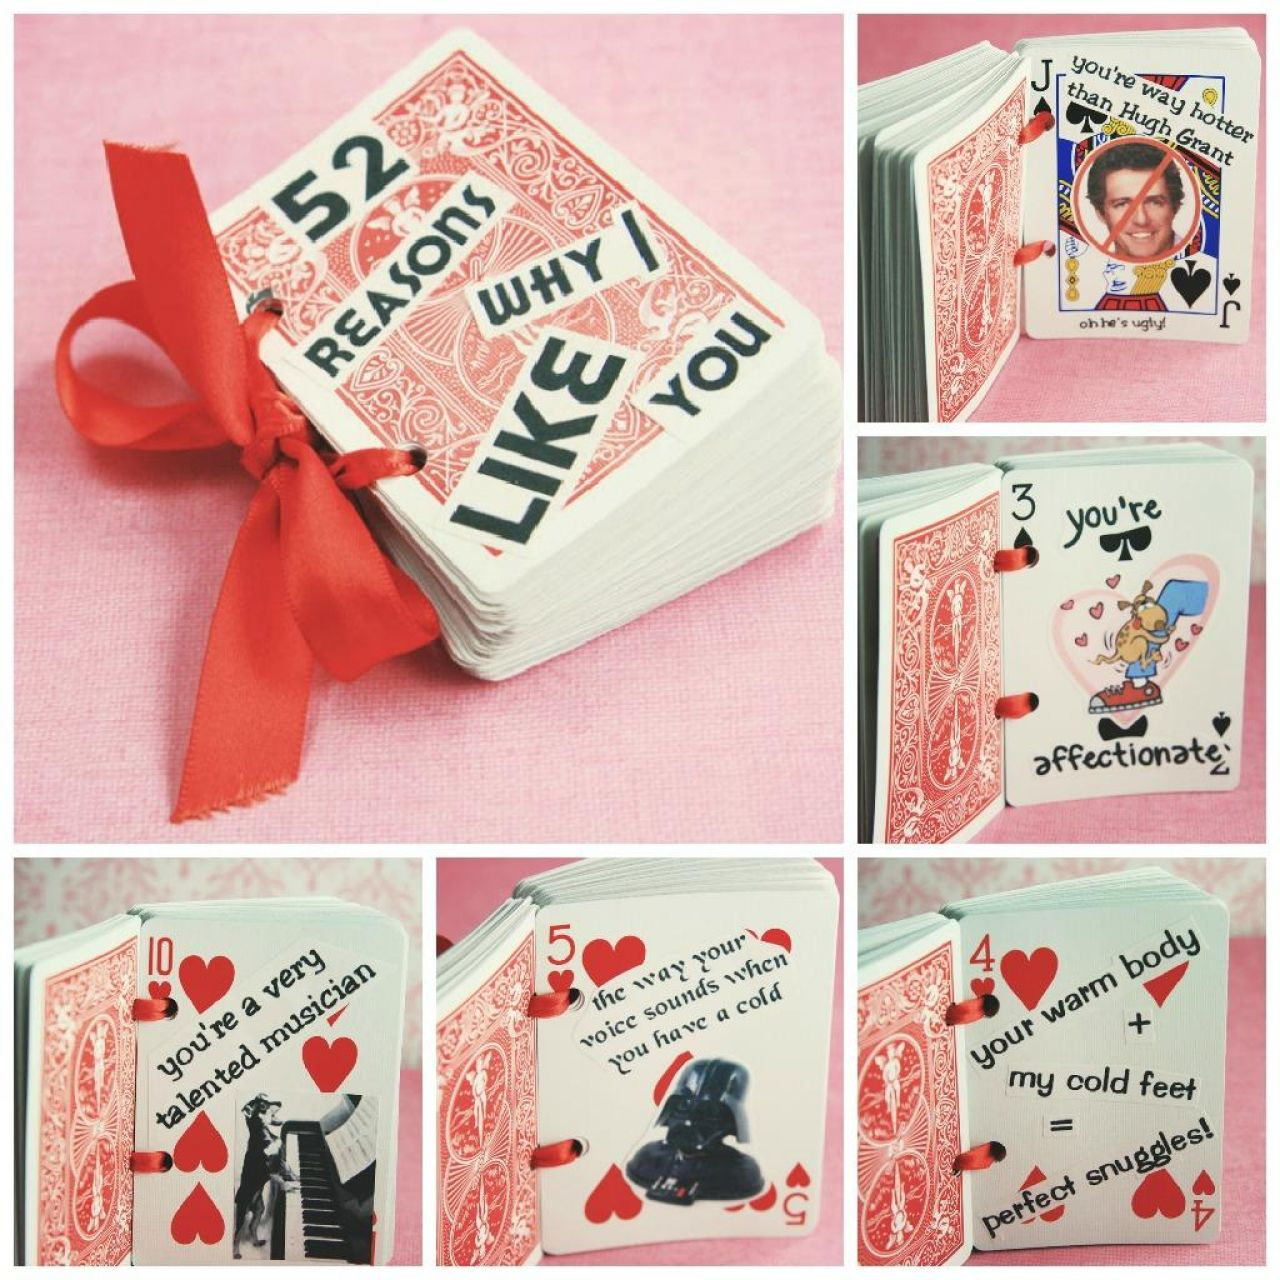 10 Wonderful Unique Ideas For Valentines Day For Him cute valentines day gifts for him 2020